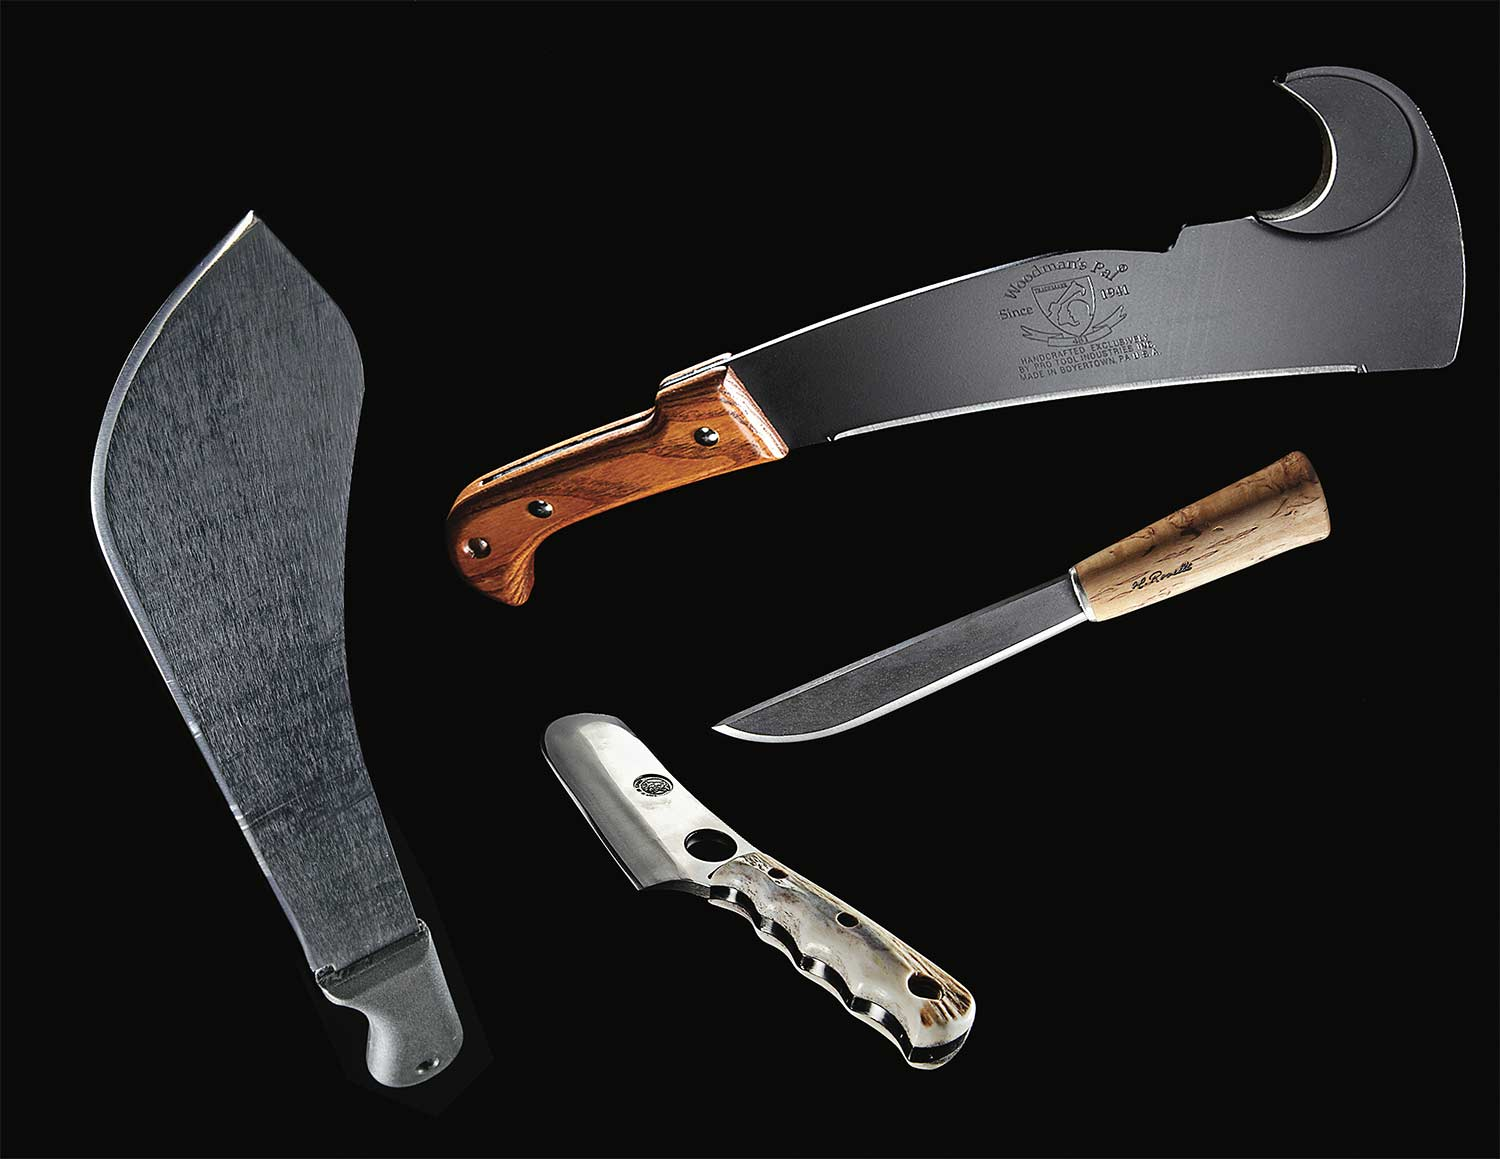 4 Wickedly Big Knives for Survival, Butchering, and Bushwhacking